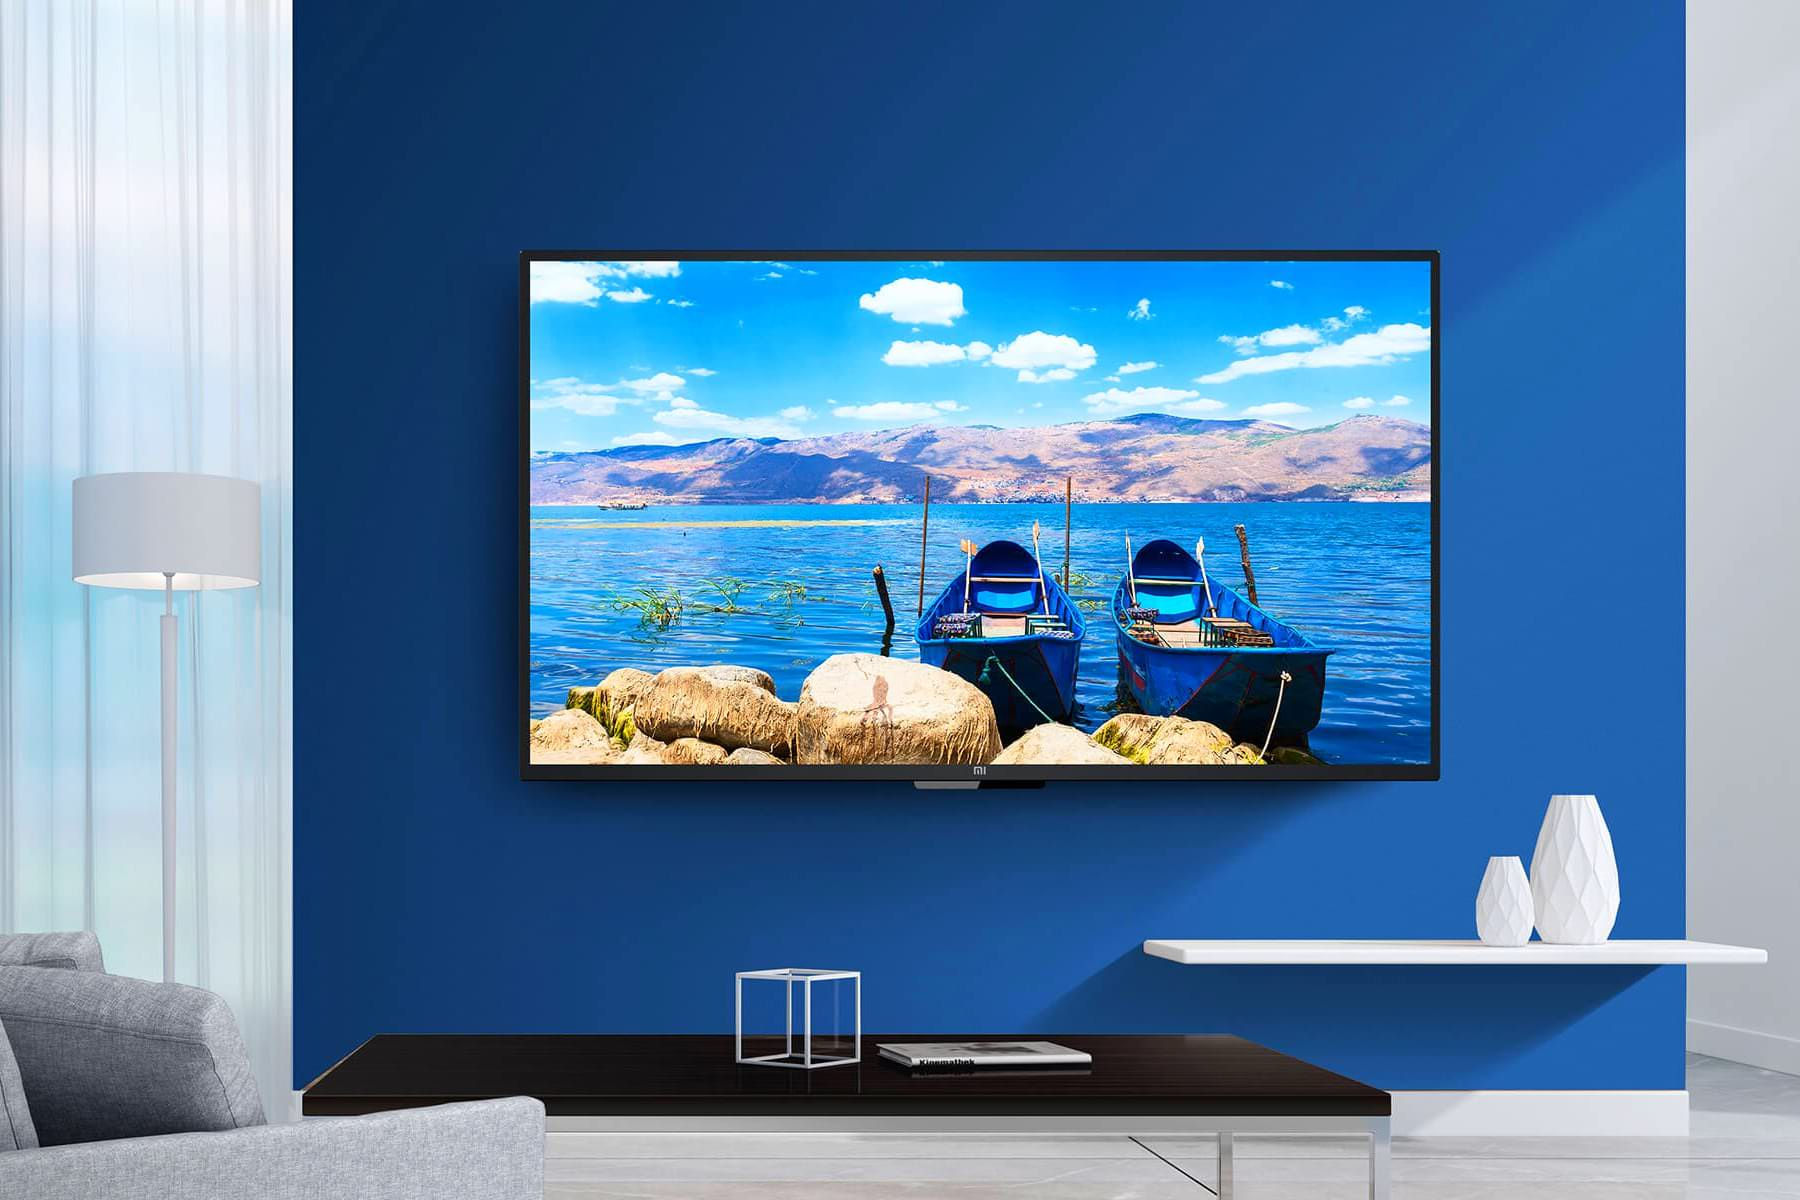 Xiaomi Redmi TV купить